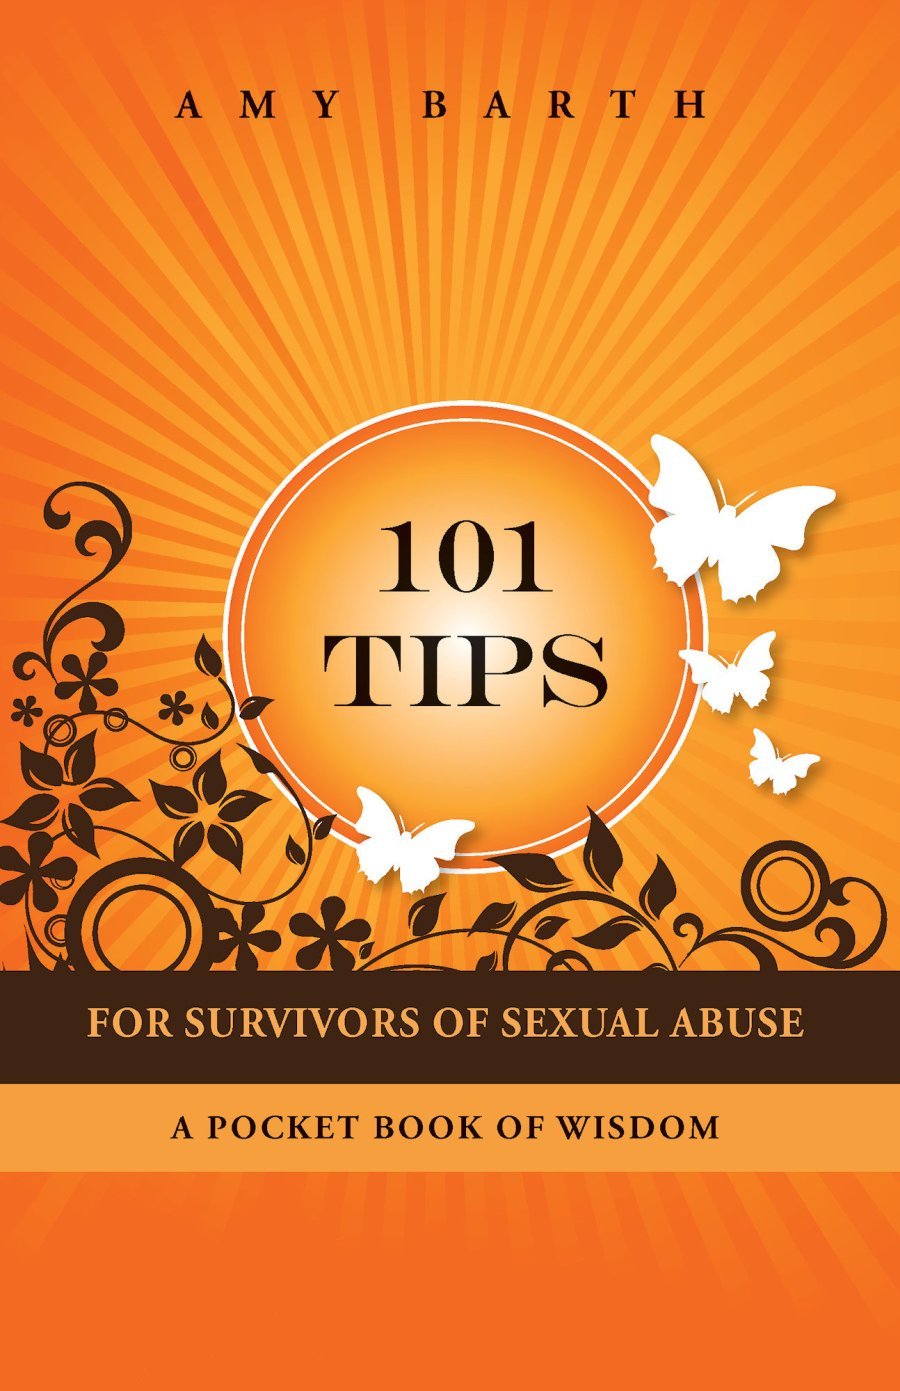 101 Tips For Survivors of Sexual Abuse 978-1-932690-94-1